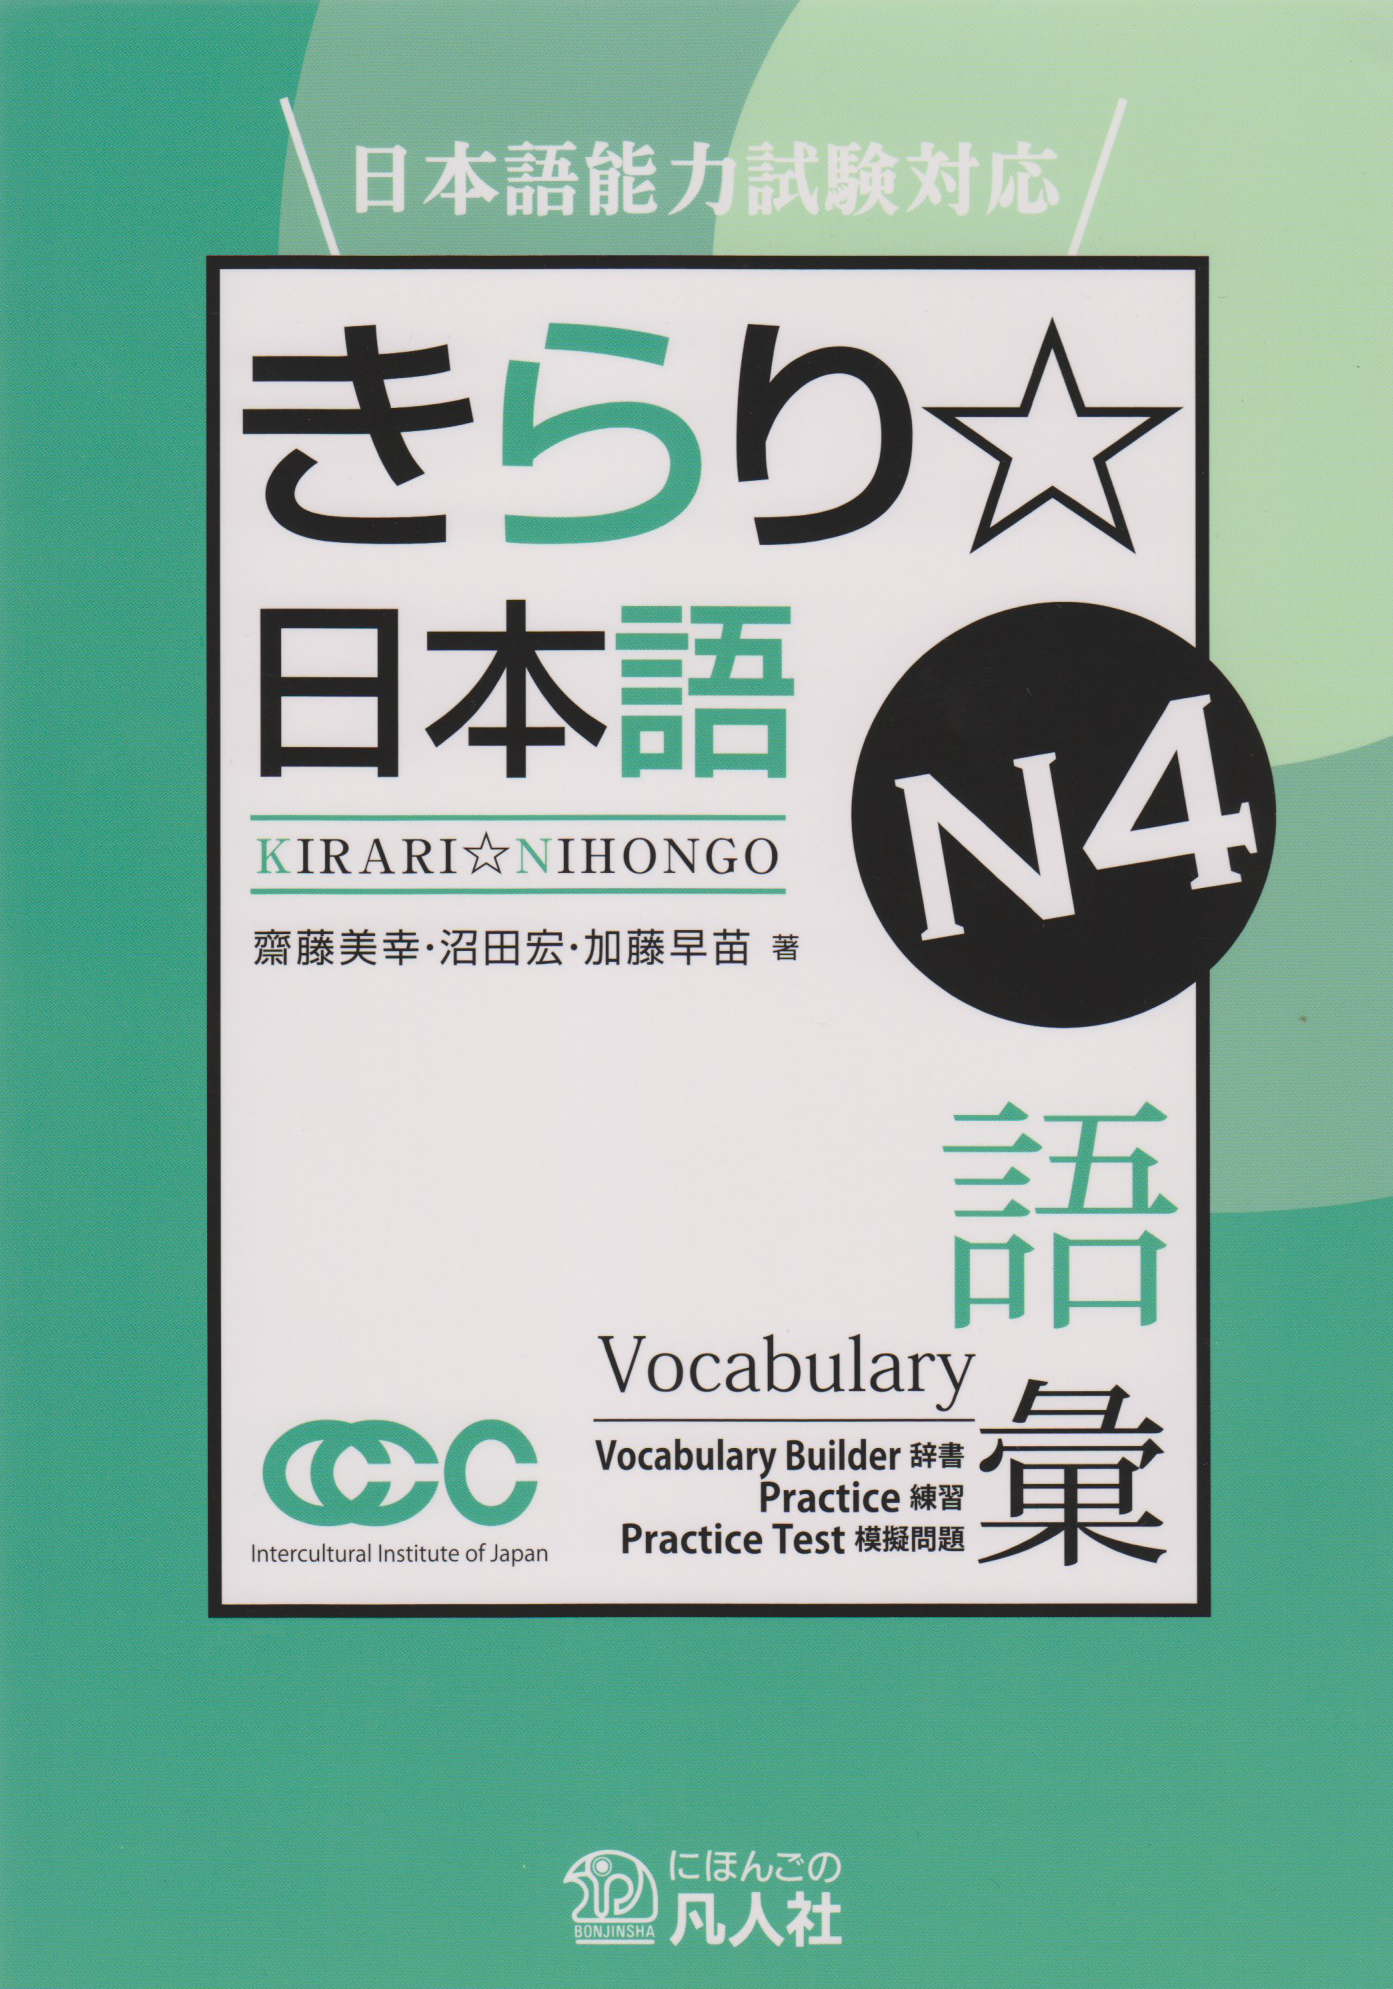 Kirari Nihongo - N4 Vocabulary Support for the JLPT Book, 350 g